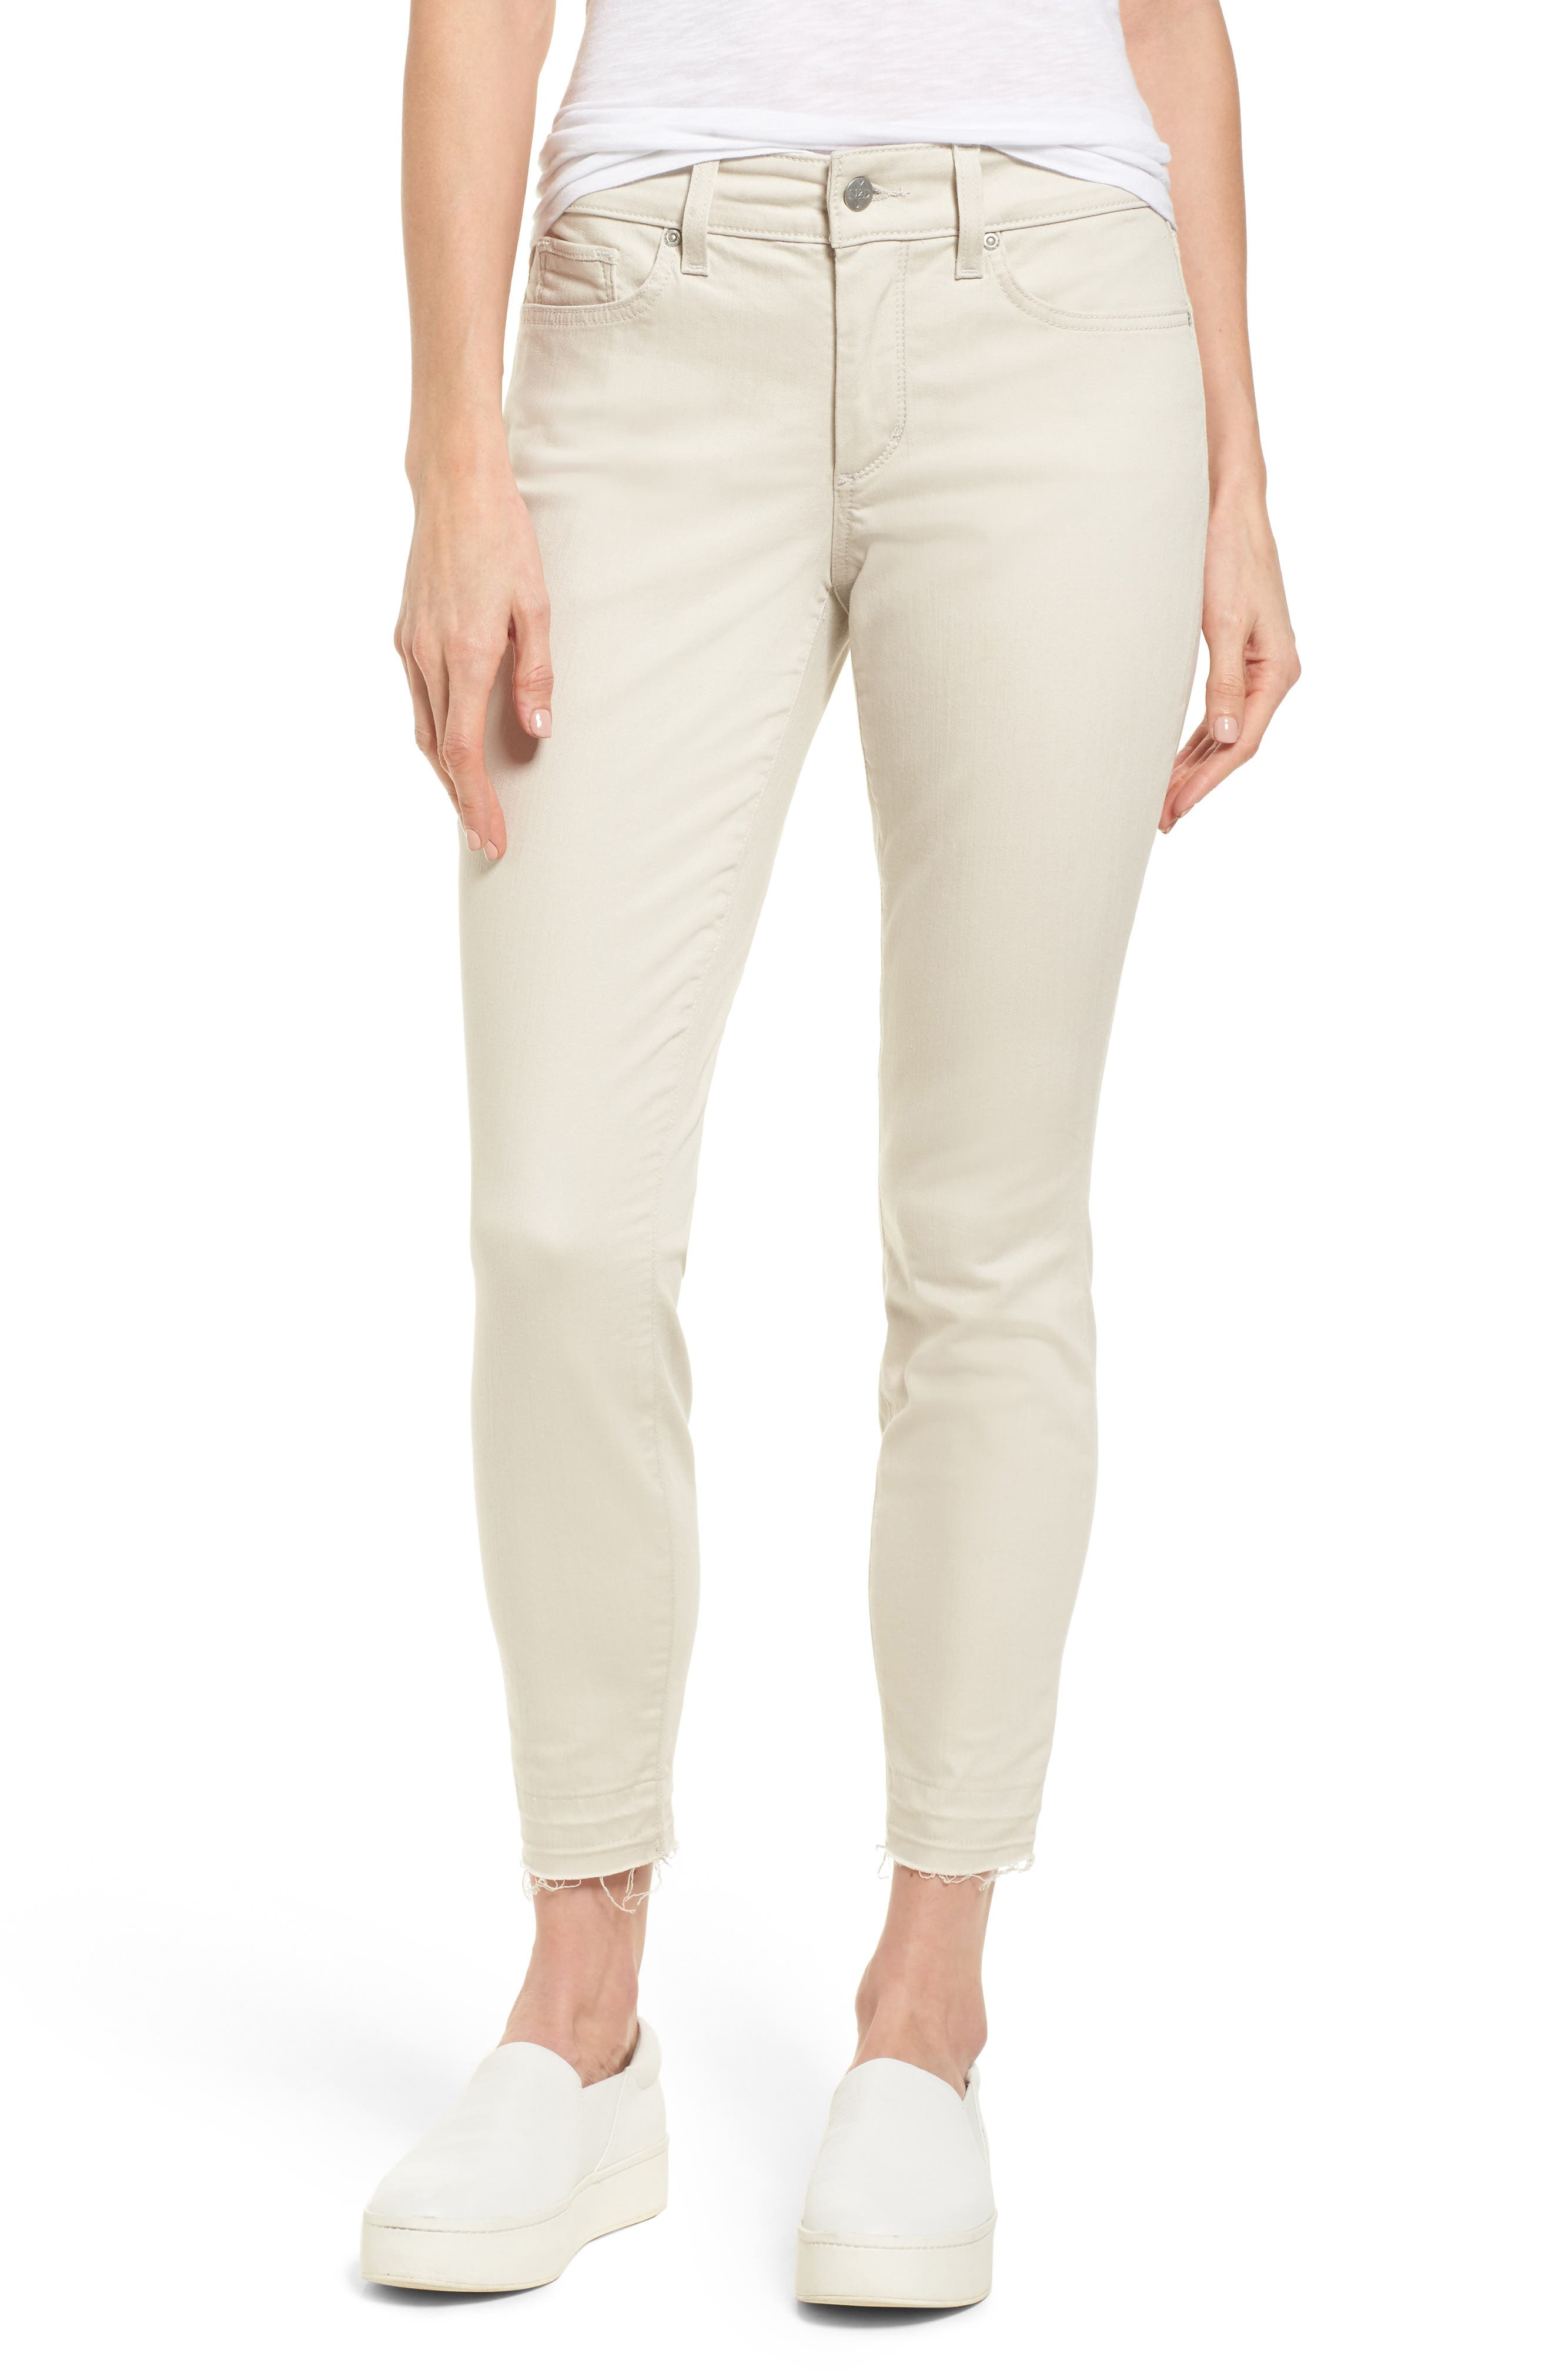 Ami Release Hem Jeans,                             Main thumbnail 1, color,                             Clay